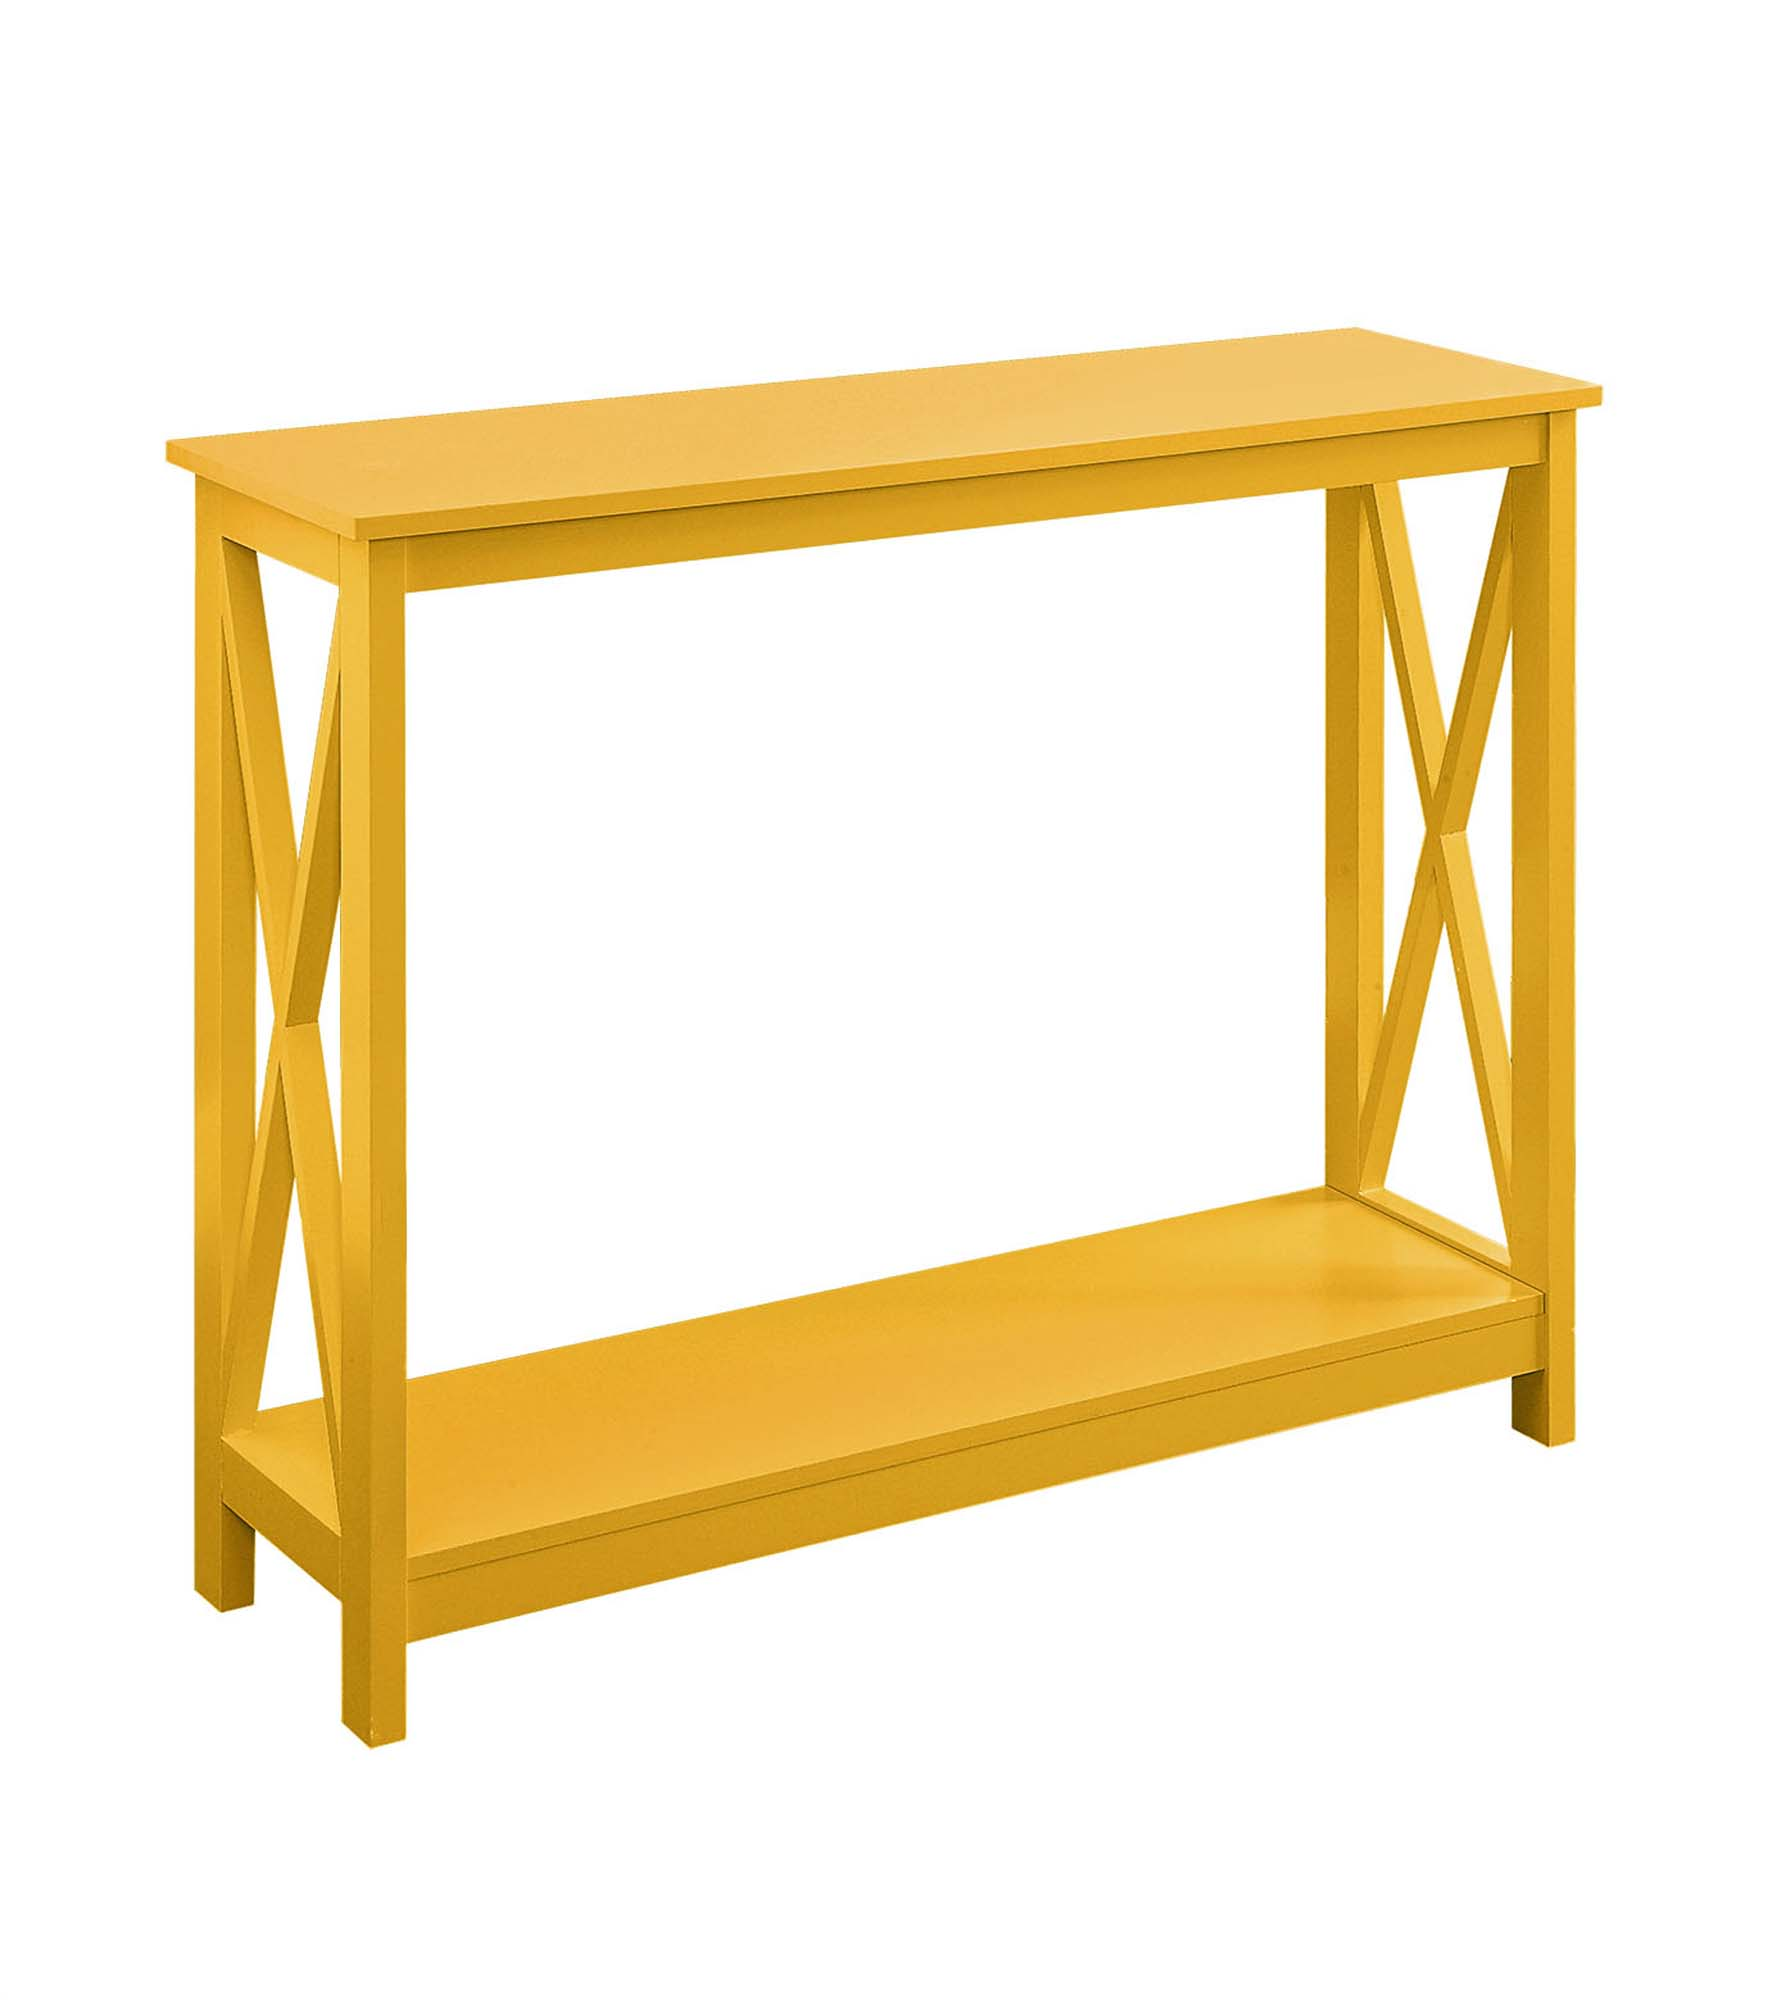 Convenience Concepts 203099Y Oxford Console Table, Yellow - 31.5 x 11.75 x 39.5 in.